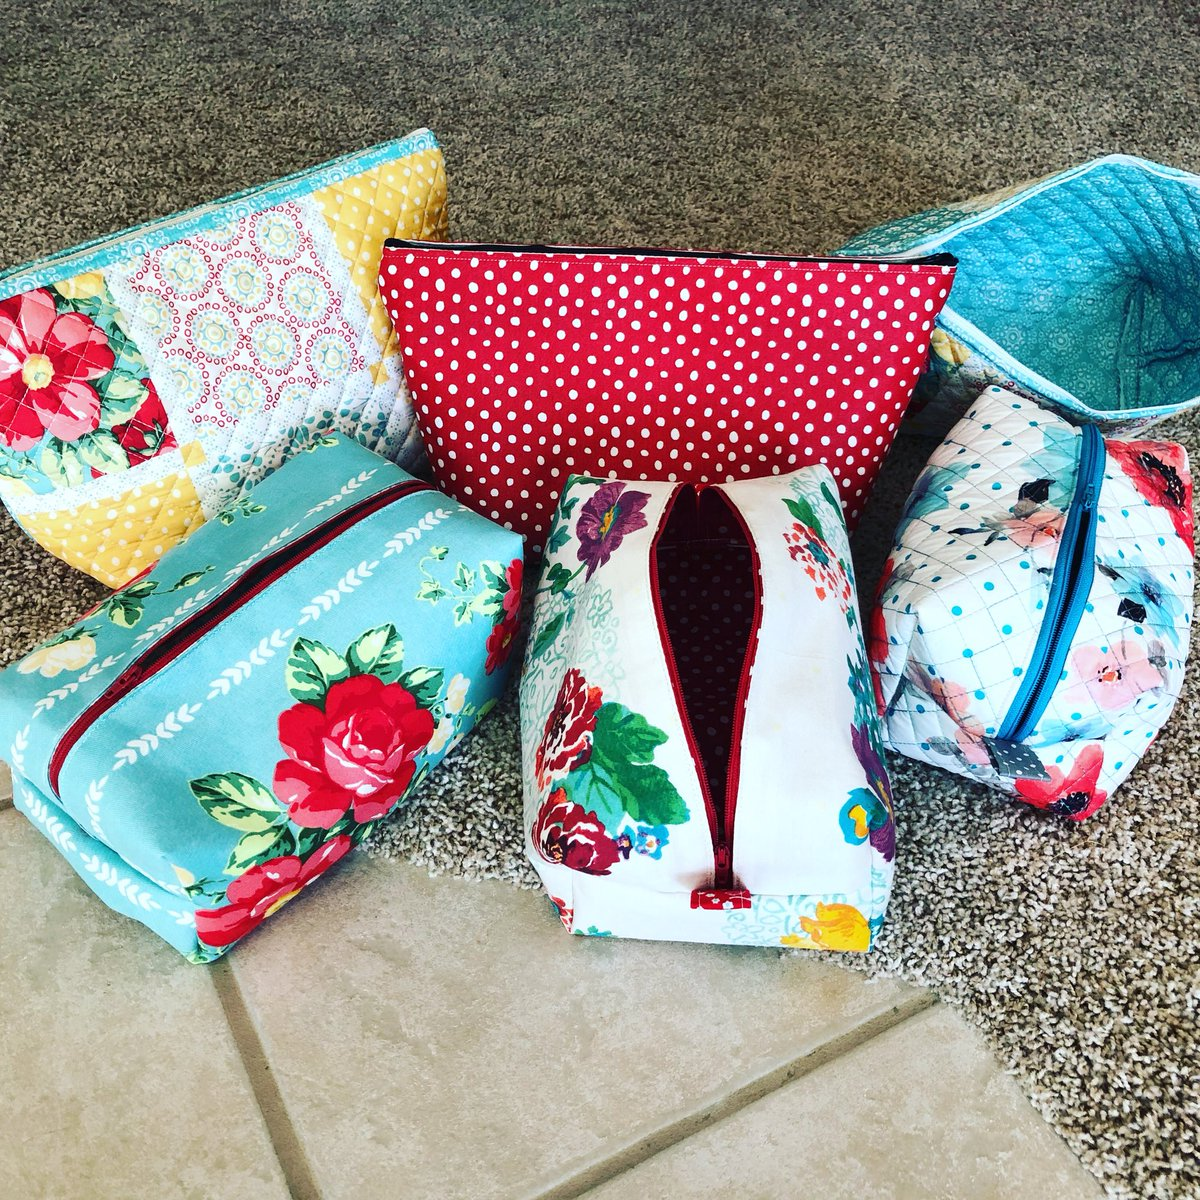 Jody Houck On Twitter I Made Makeup Travel Bags With Pioneer Woman Placemats Love Them Pioneerwomanree